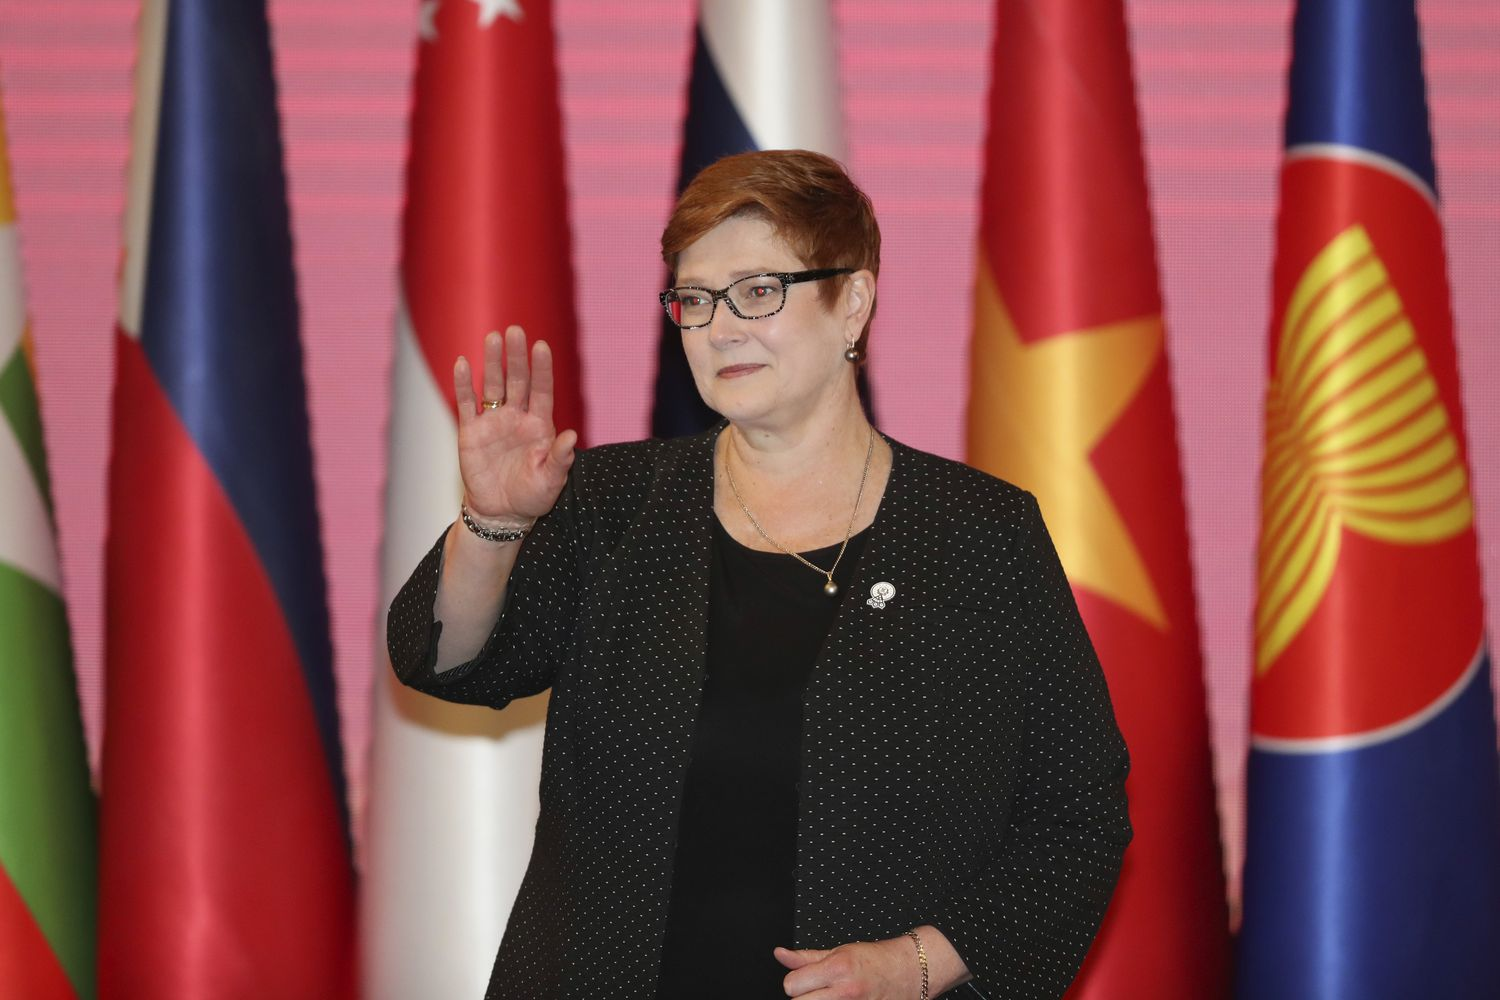 Australian Foreign Minister Marise Payne waves during a group photo with Asean foreign ministers at a meeting in Bangkok on Thursday. (AP photo)